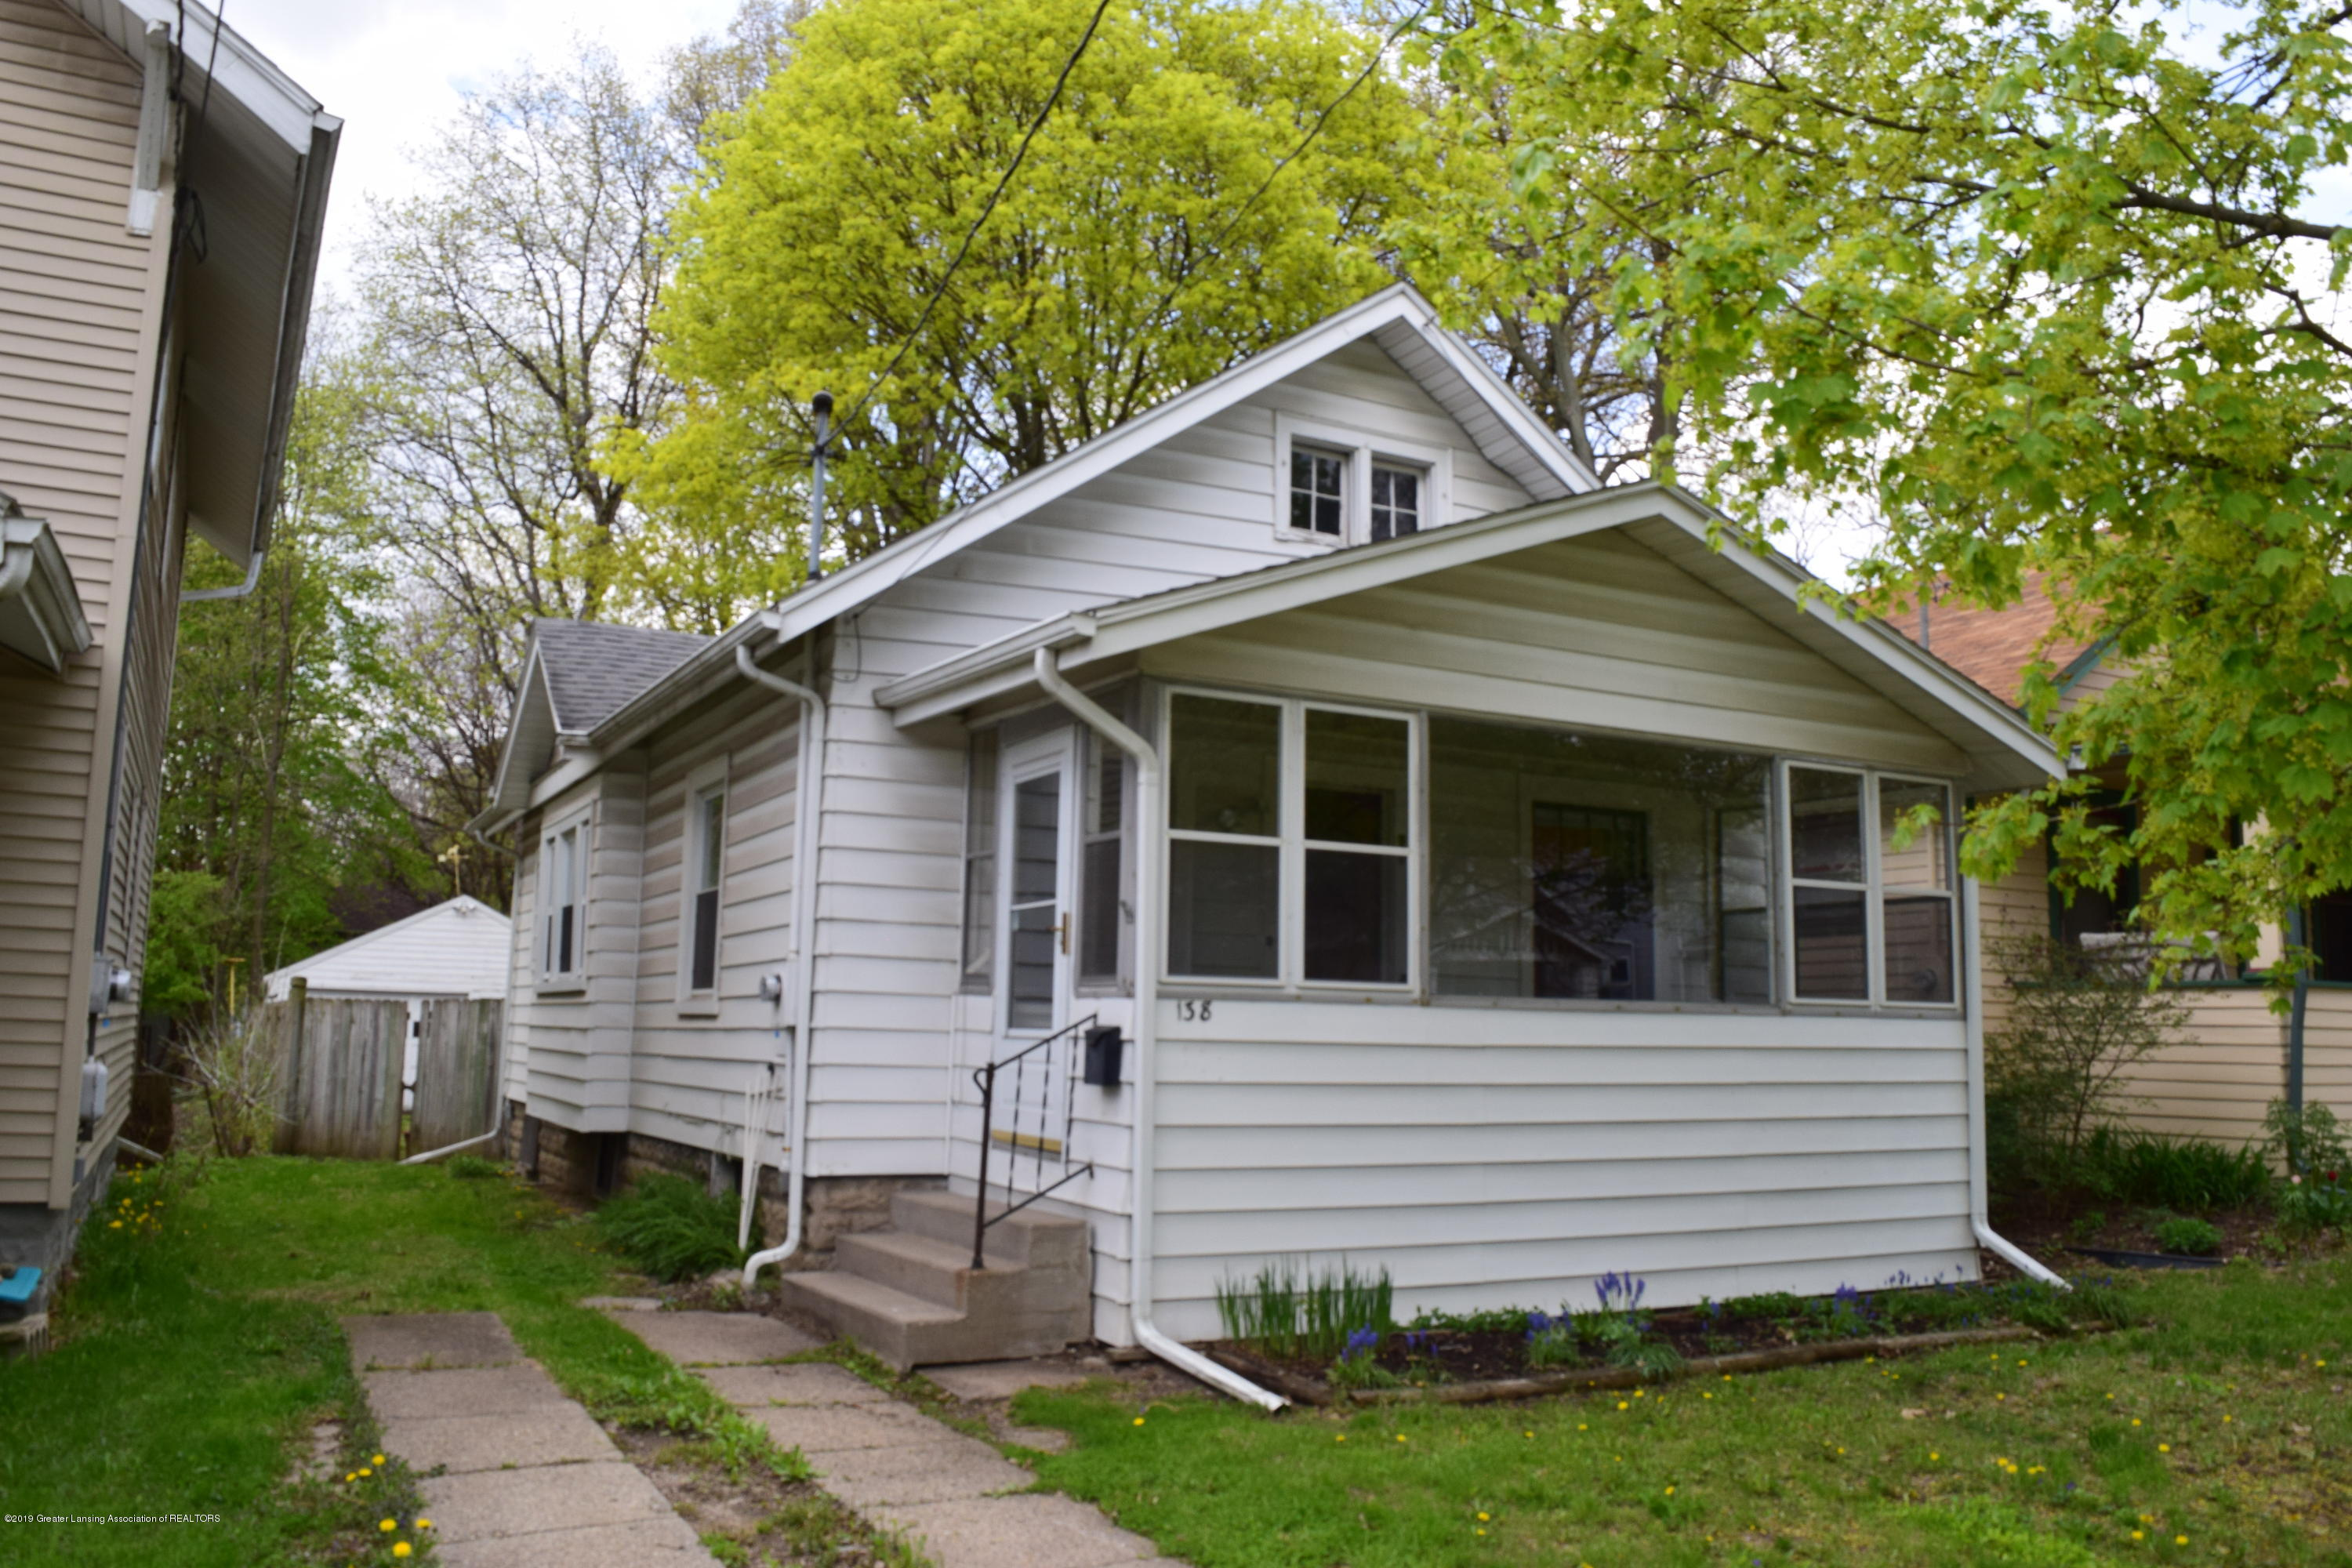 138 S Foster Ave - 1 - 1